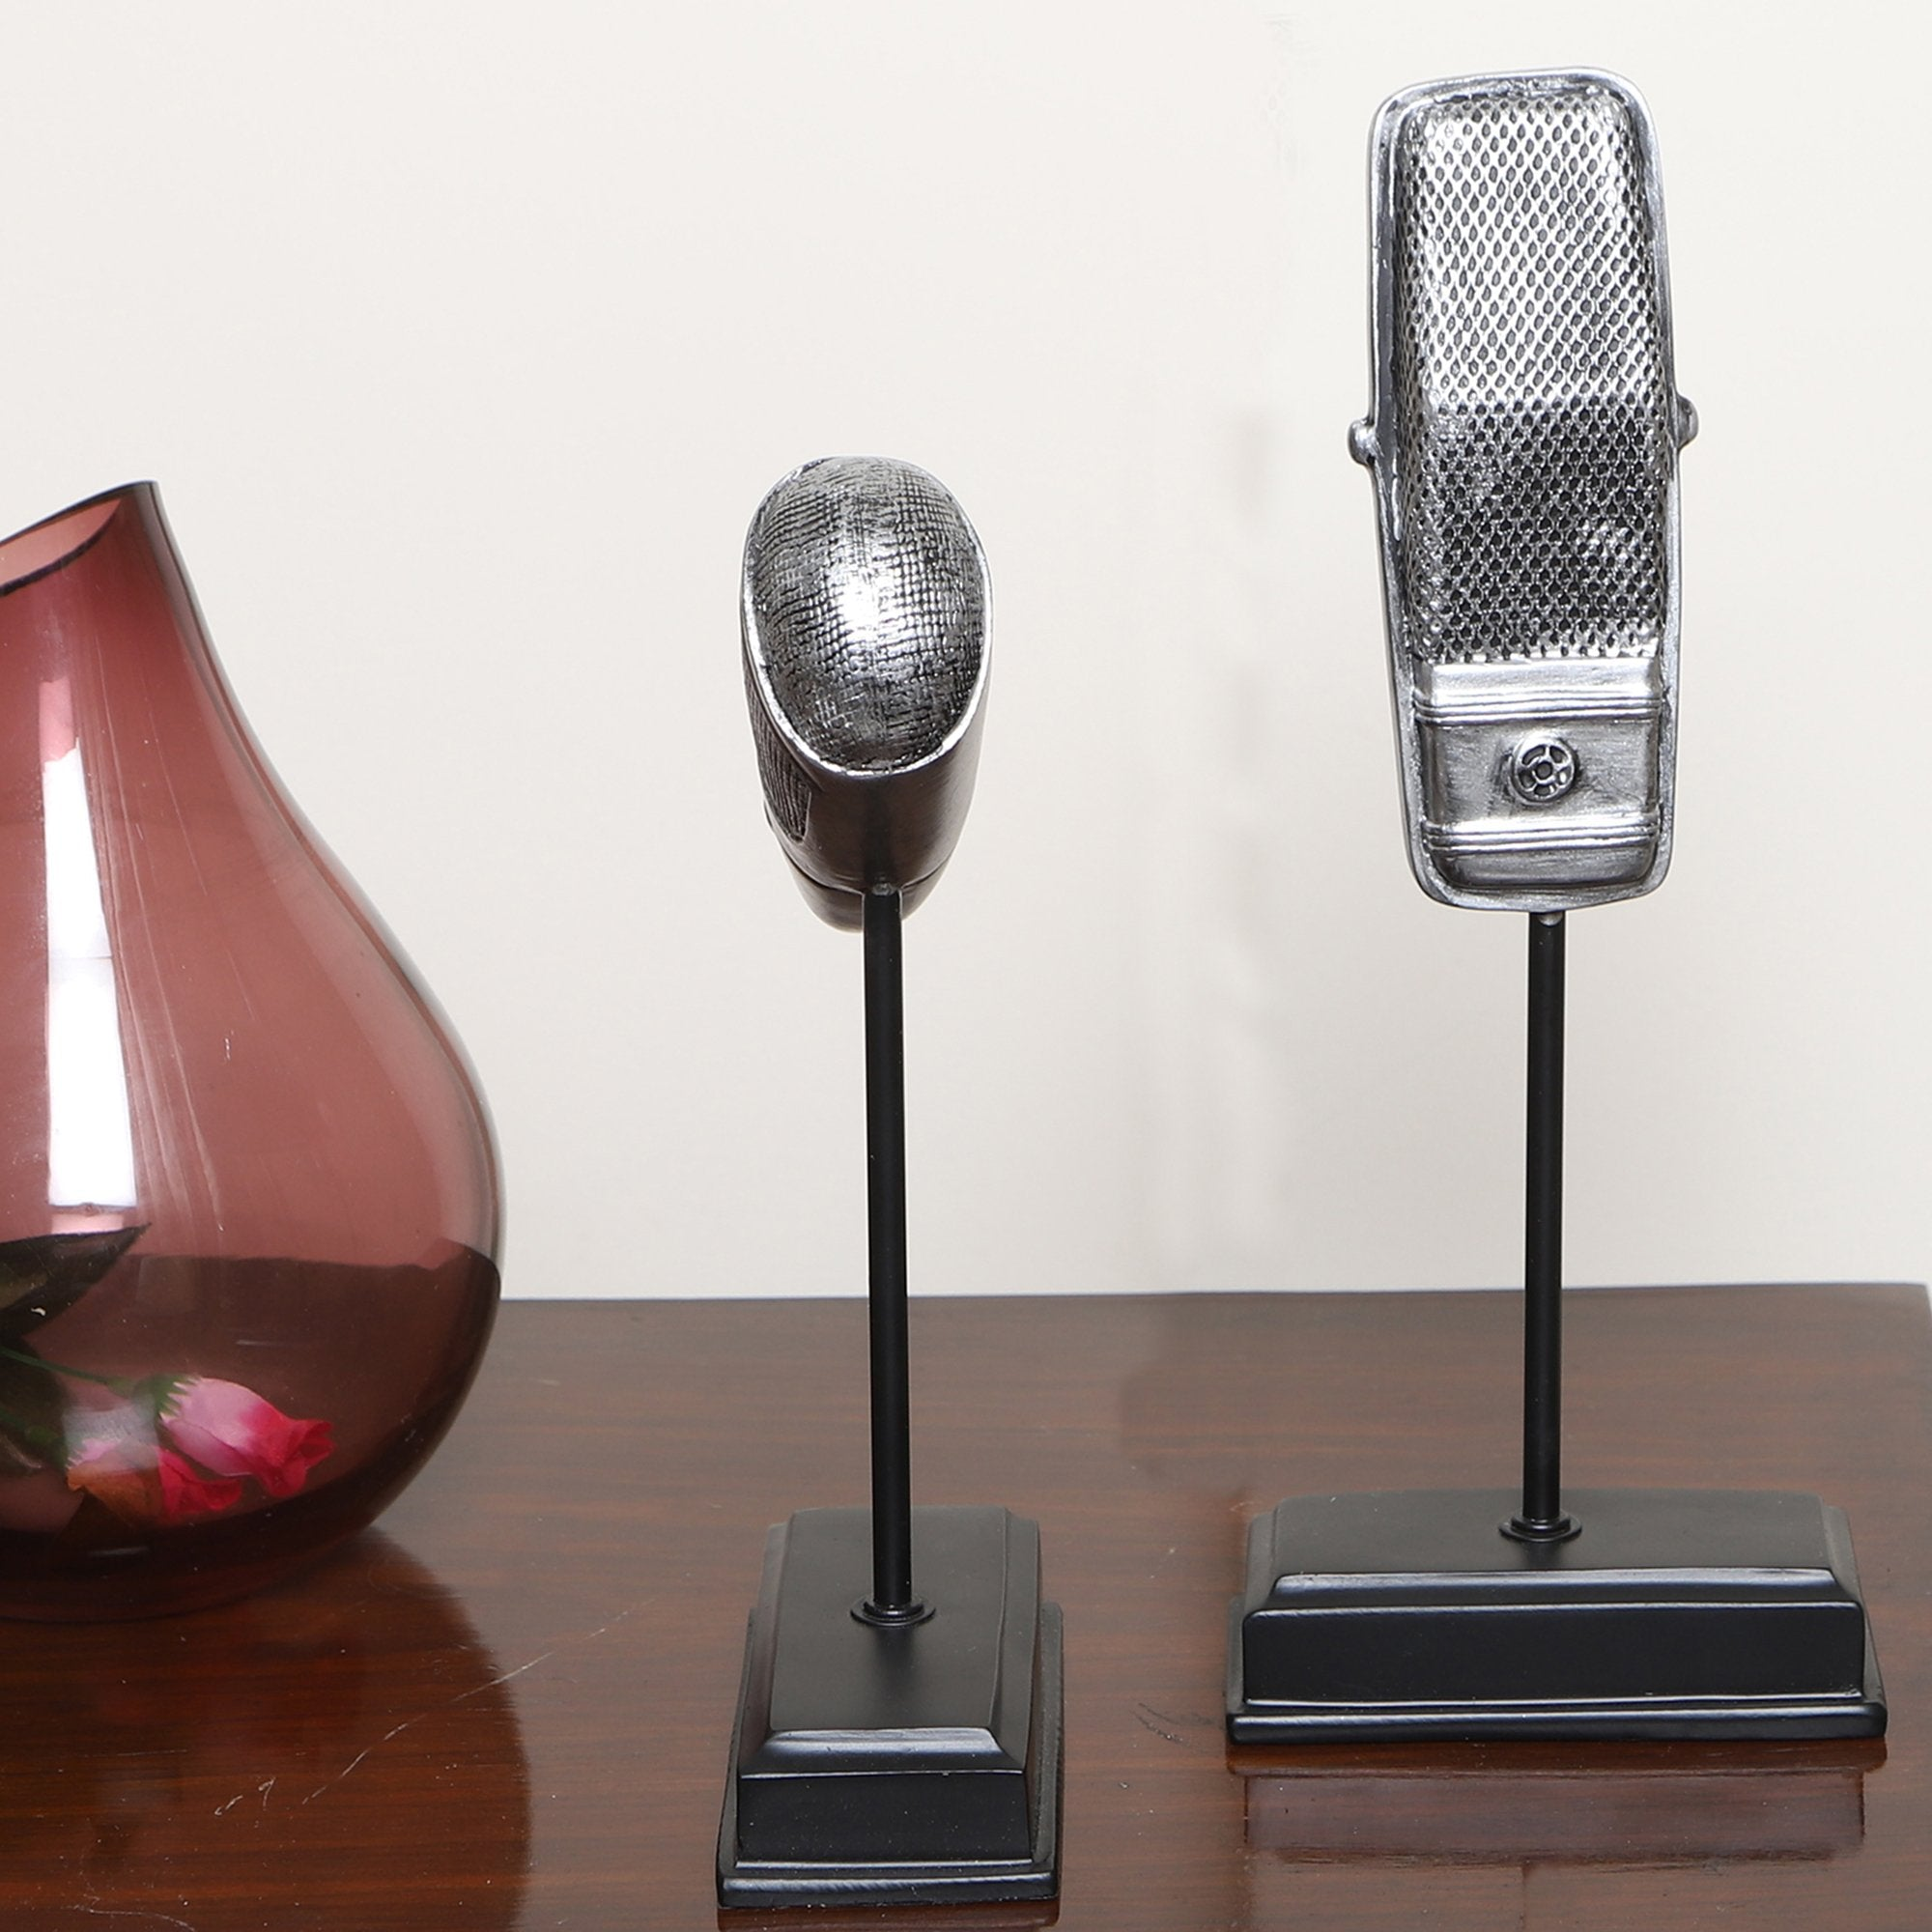 Vintage Microphone Sculpture